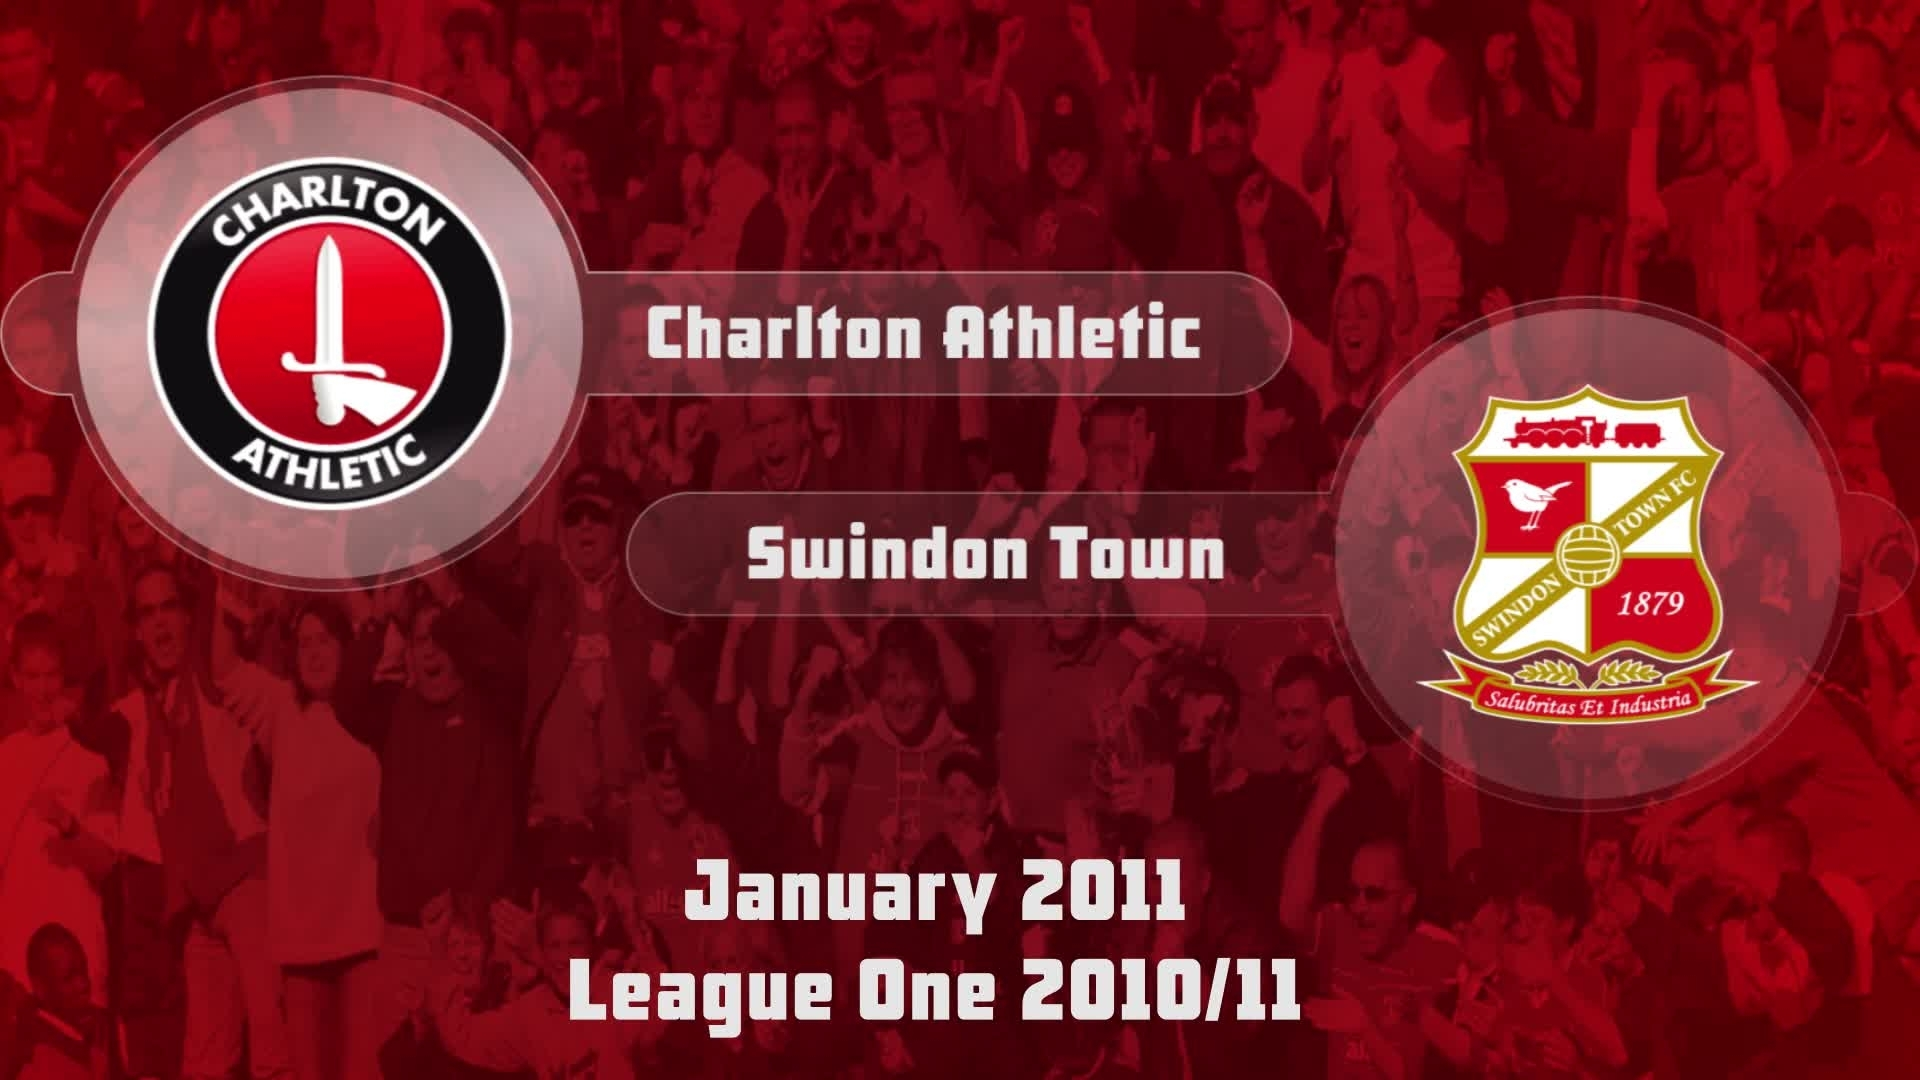 31 HIGHLIGHTS | Charlton 2 Swindon 4 (Jan 2011)